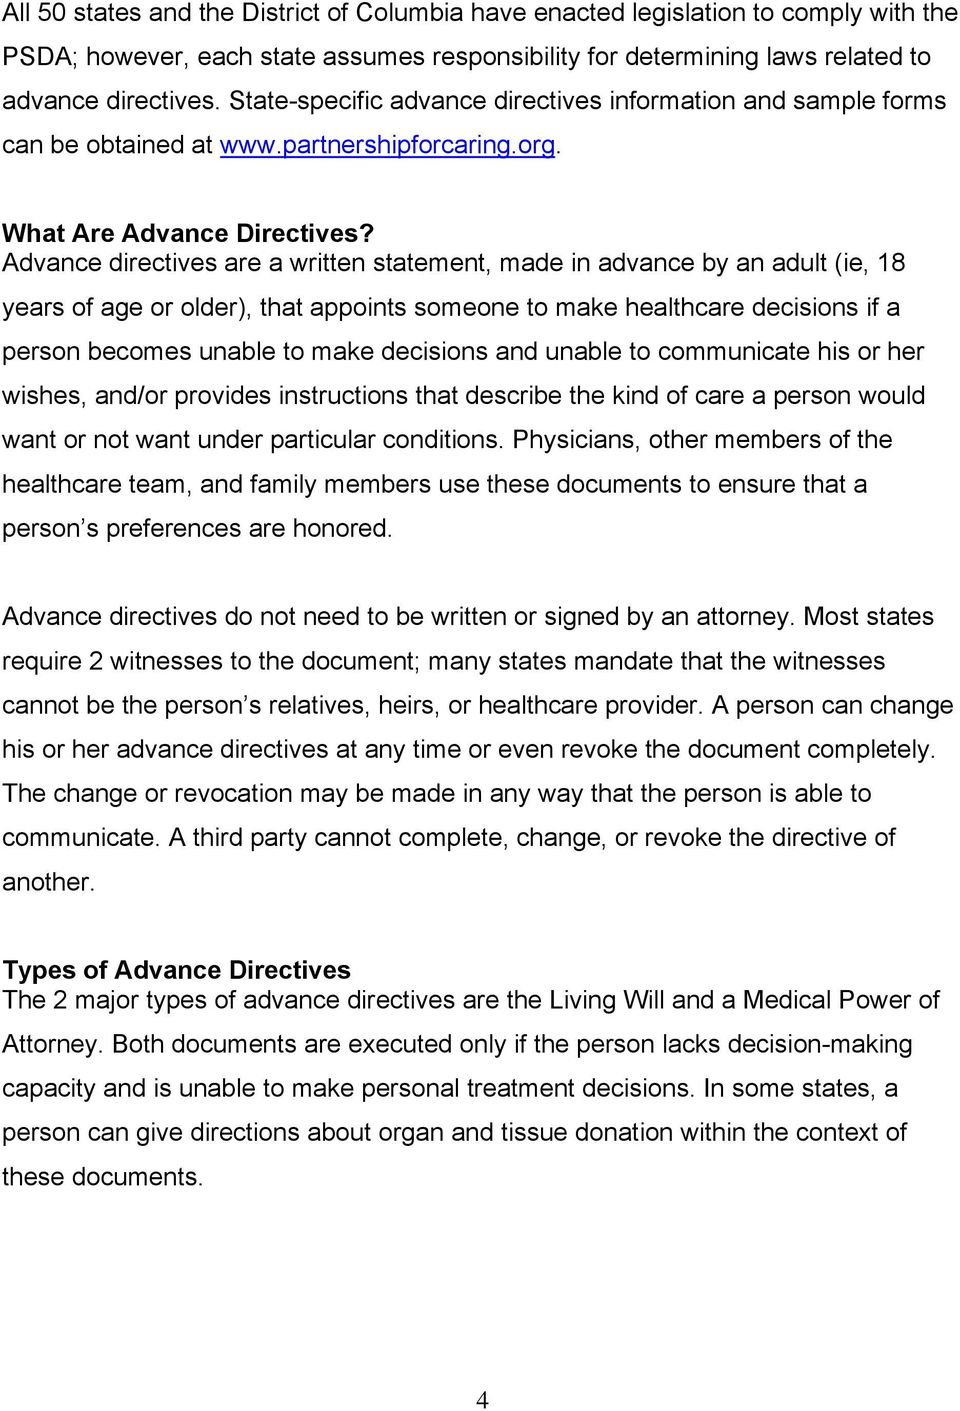 Advance directives are a written statement, made in advance by an adult (ie, 18 years of age or older), that appoints someone to make healthcare decisions if a person becomes unable to make decisions